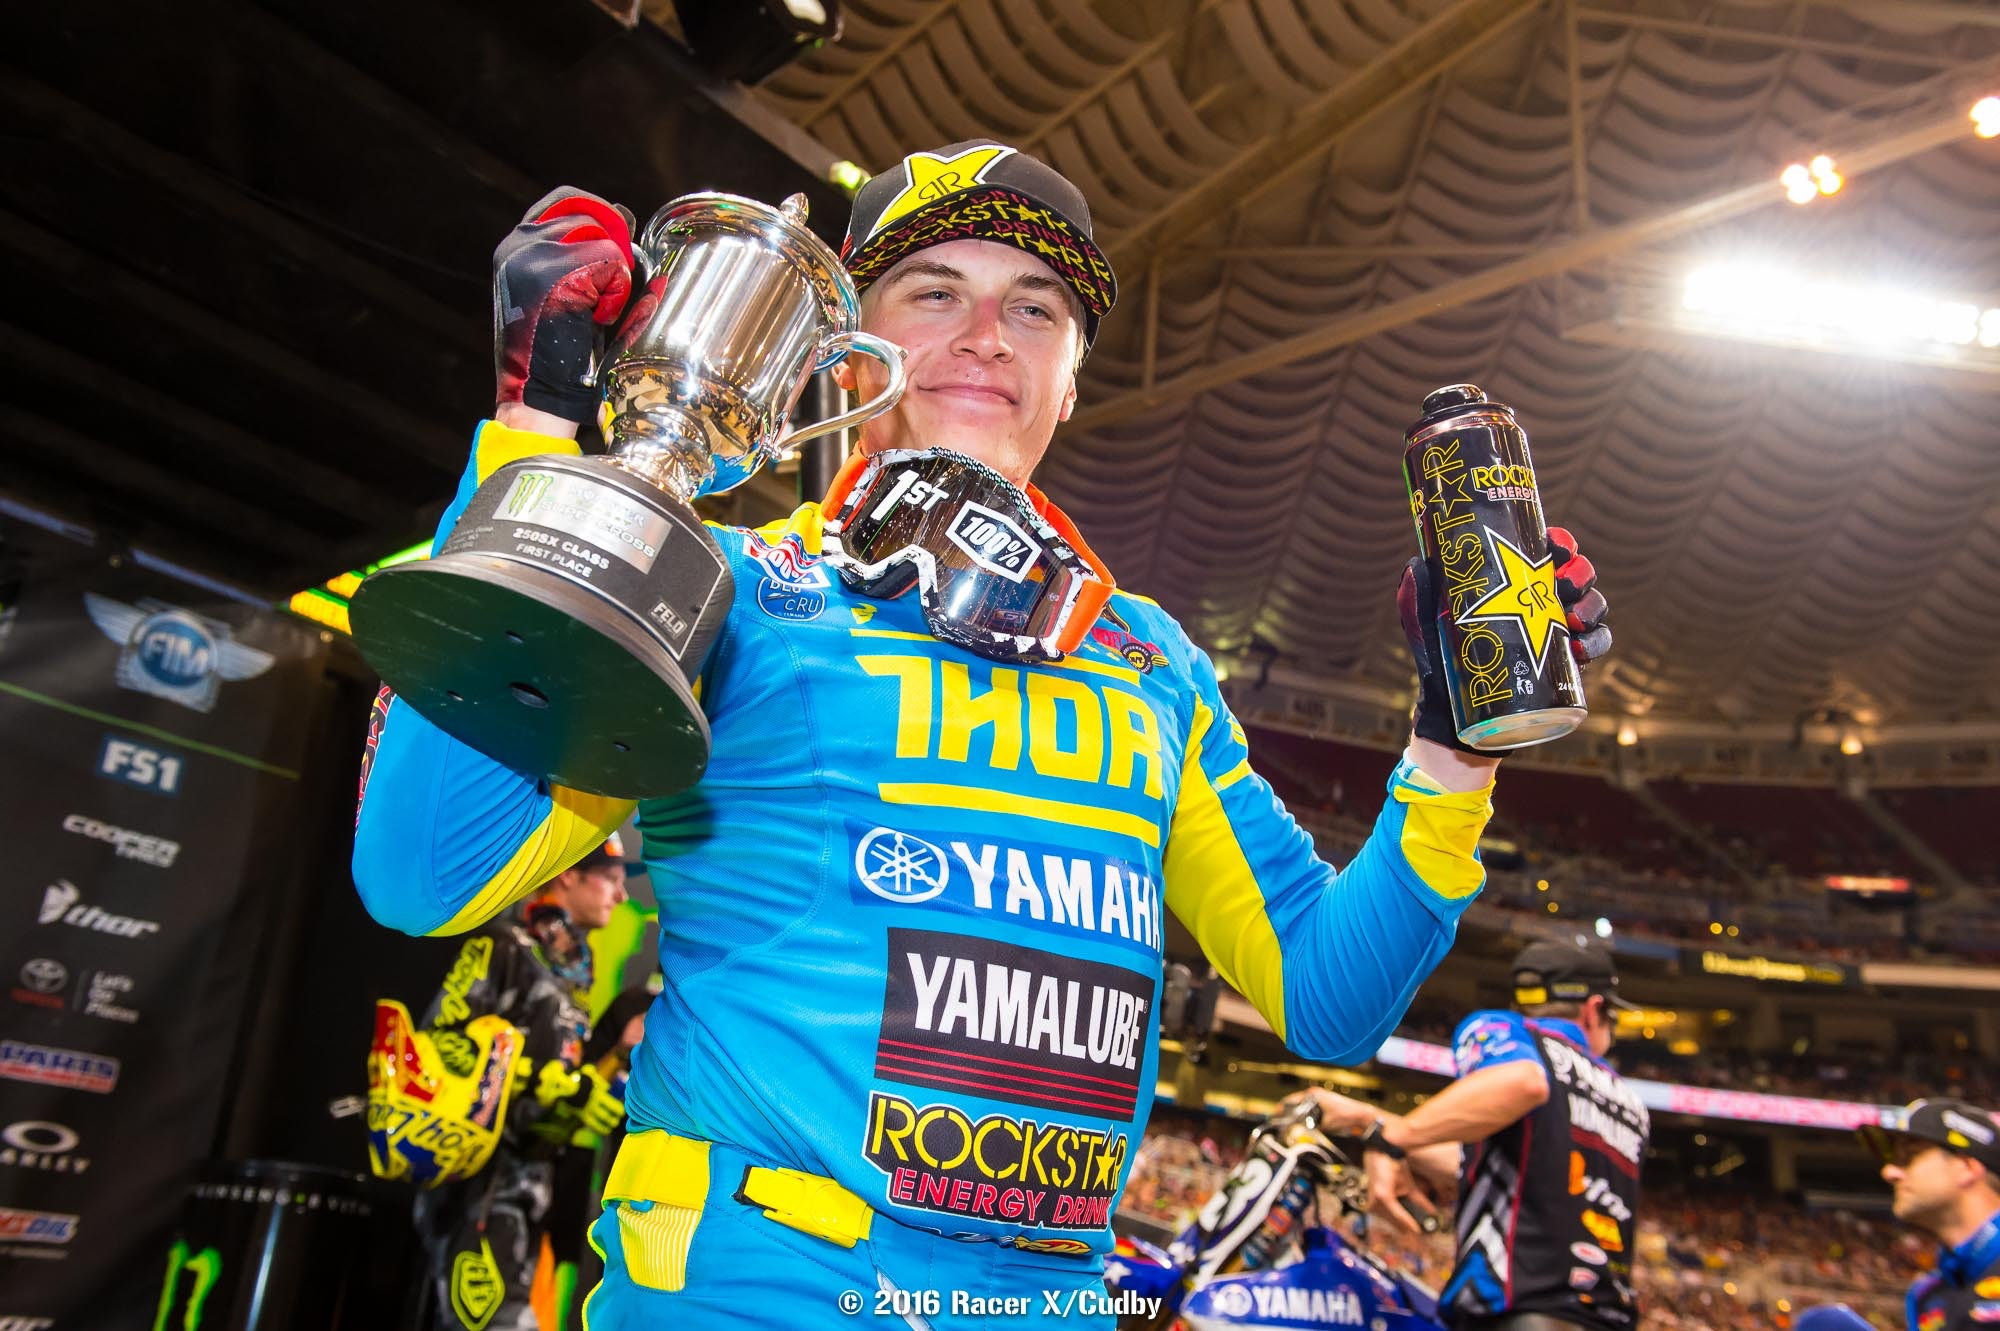 Martin isn't going to win a 250SX championship, but he can still win a few more races in 2016.